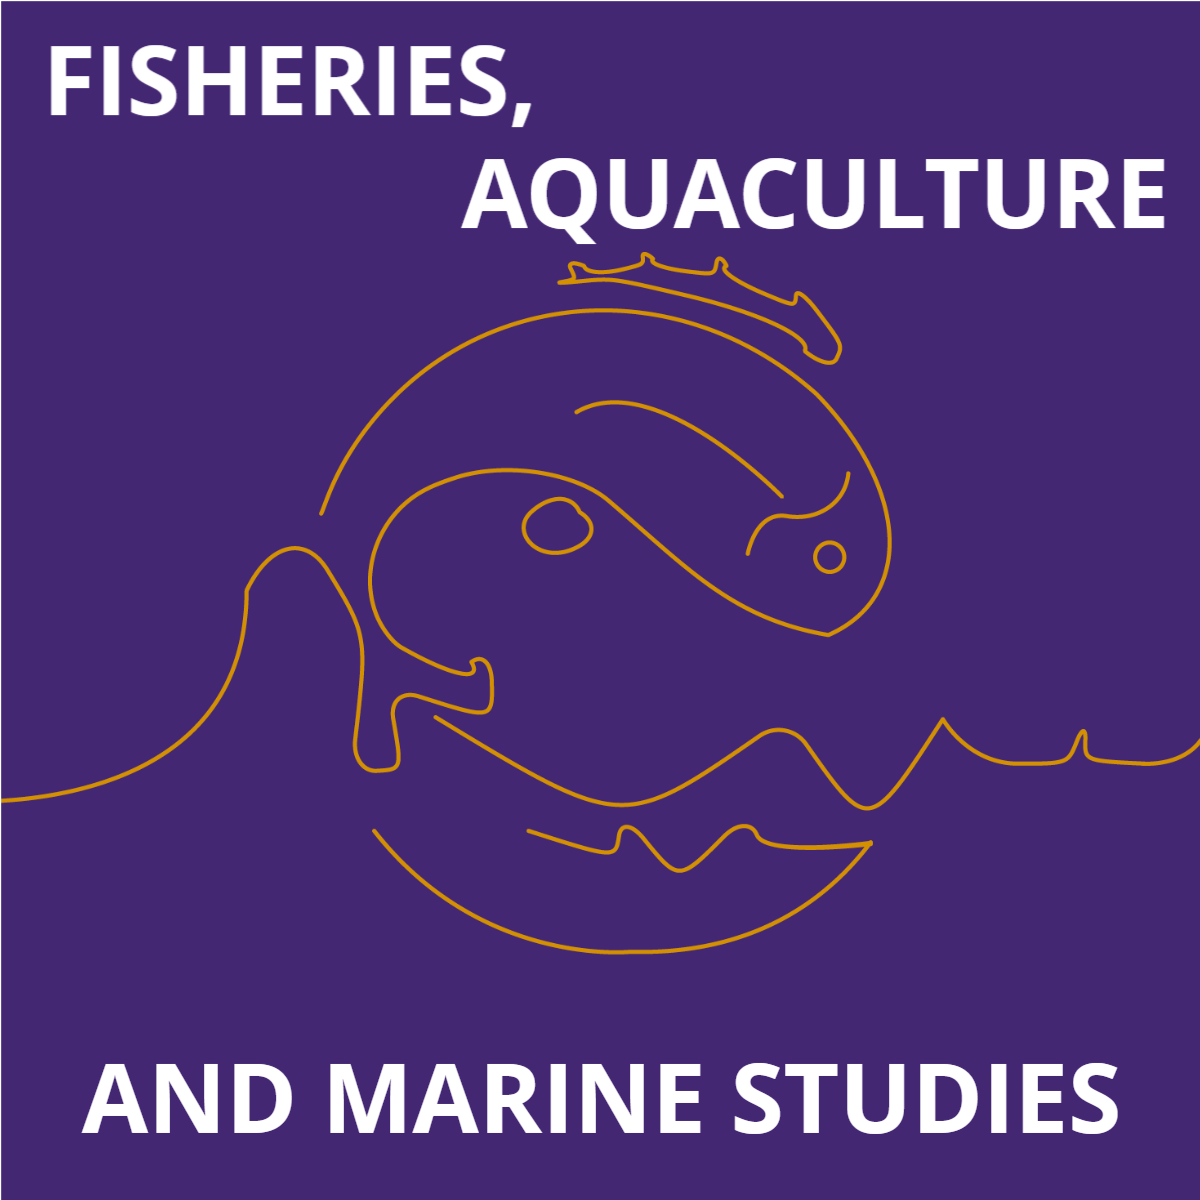 Fisheries Aquaculture and Marine Science